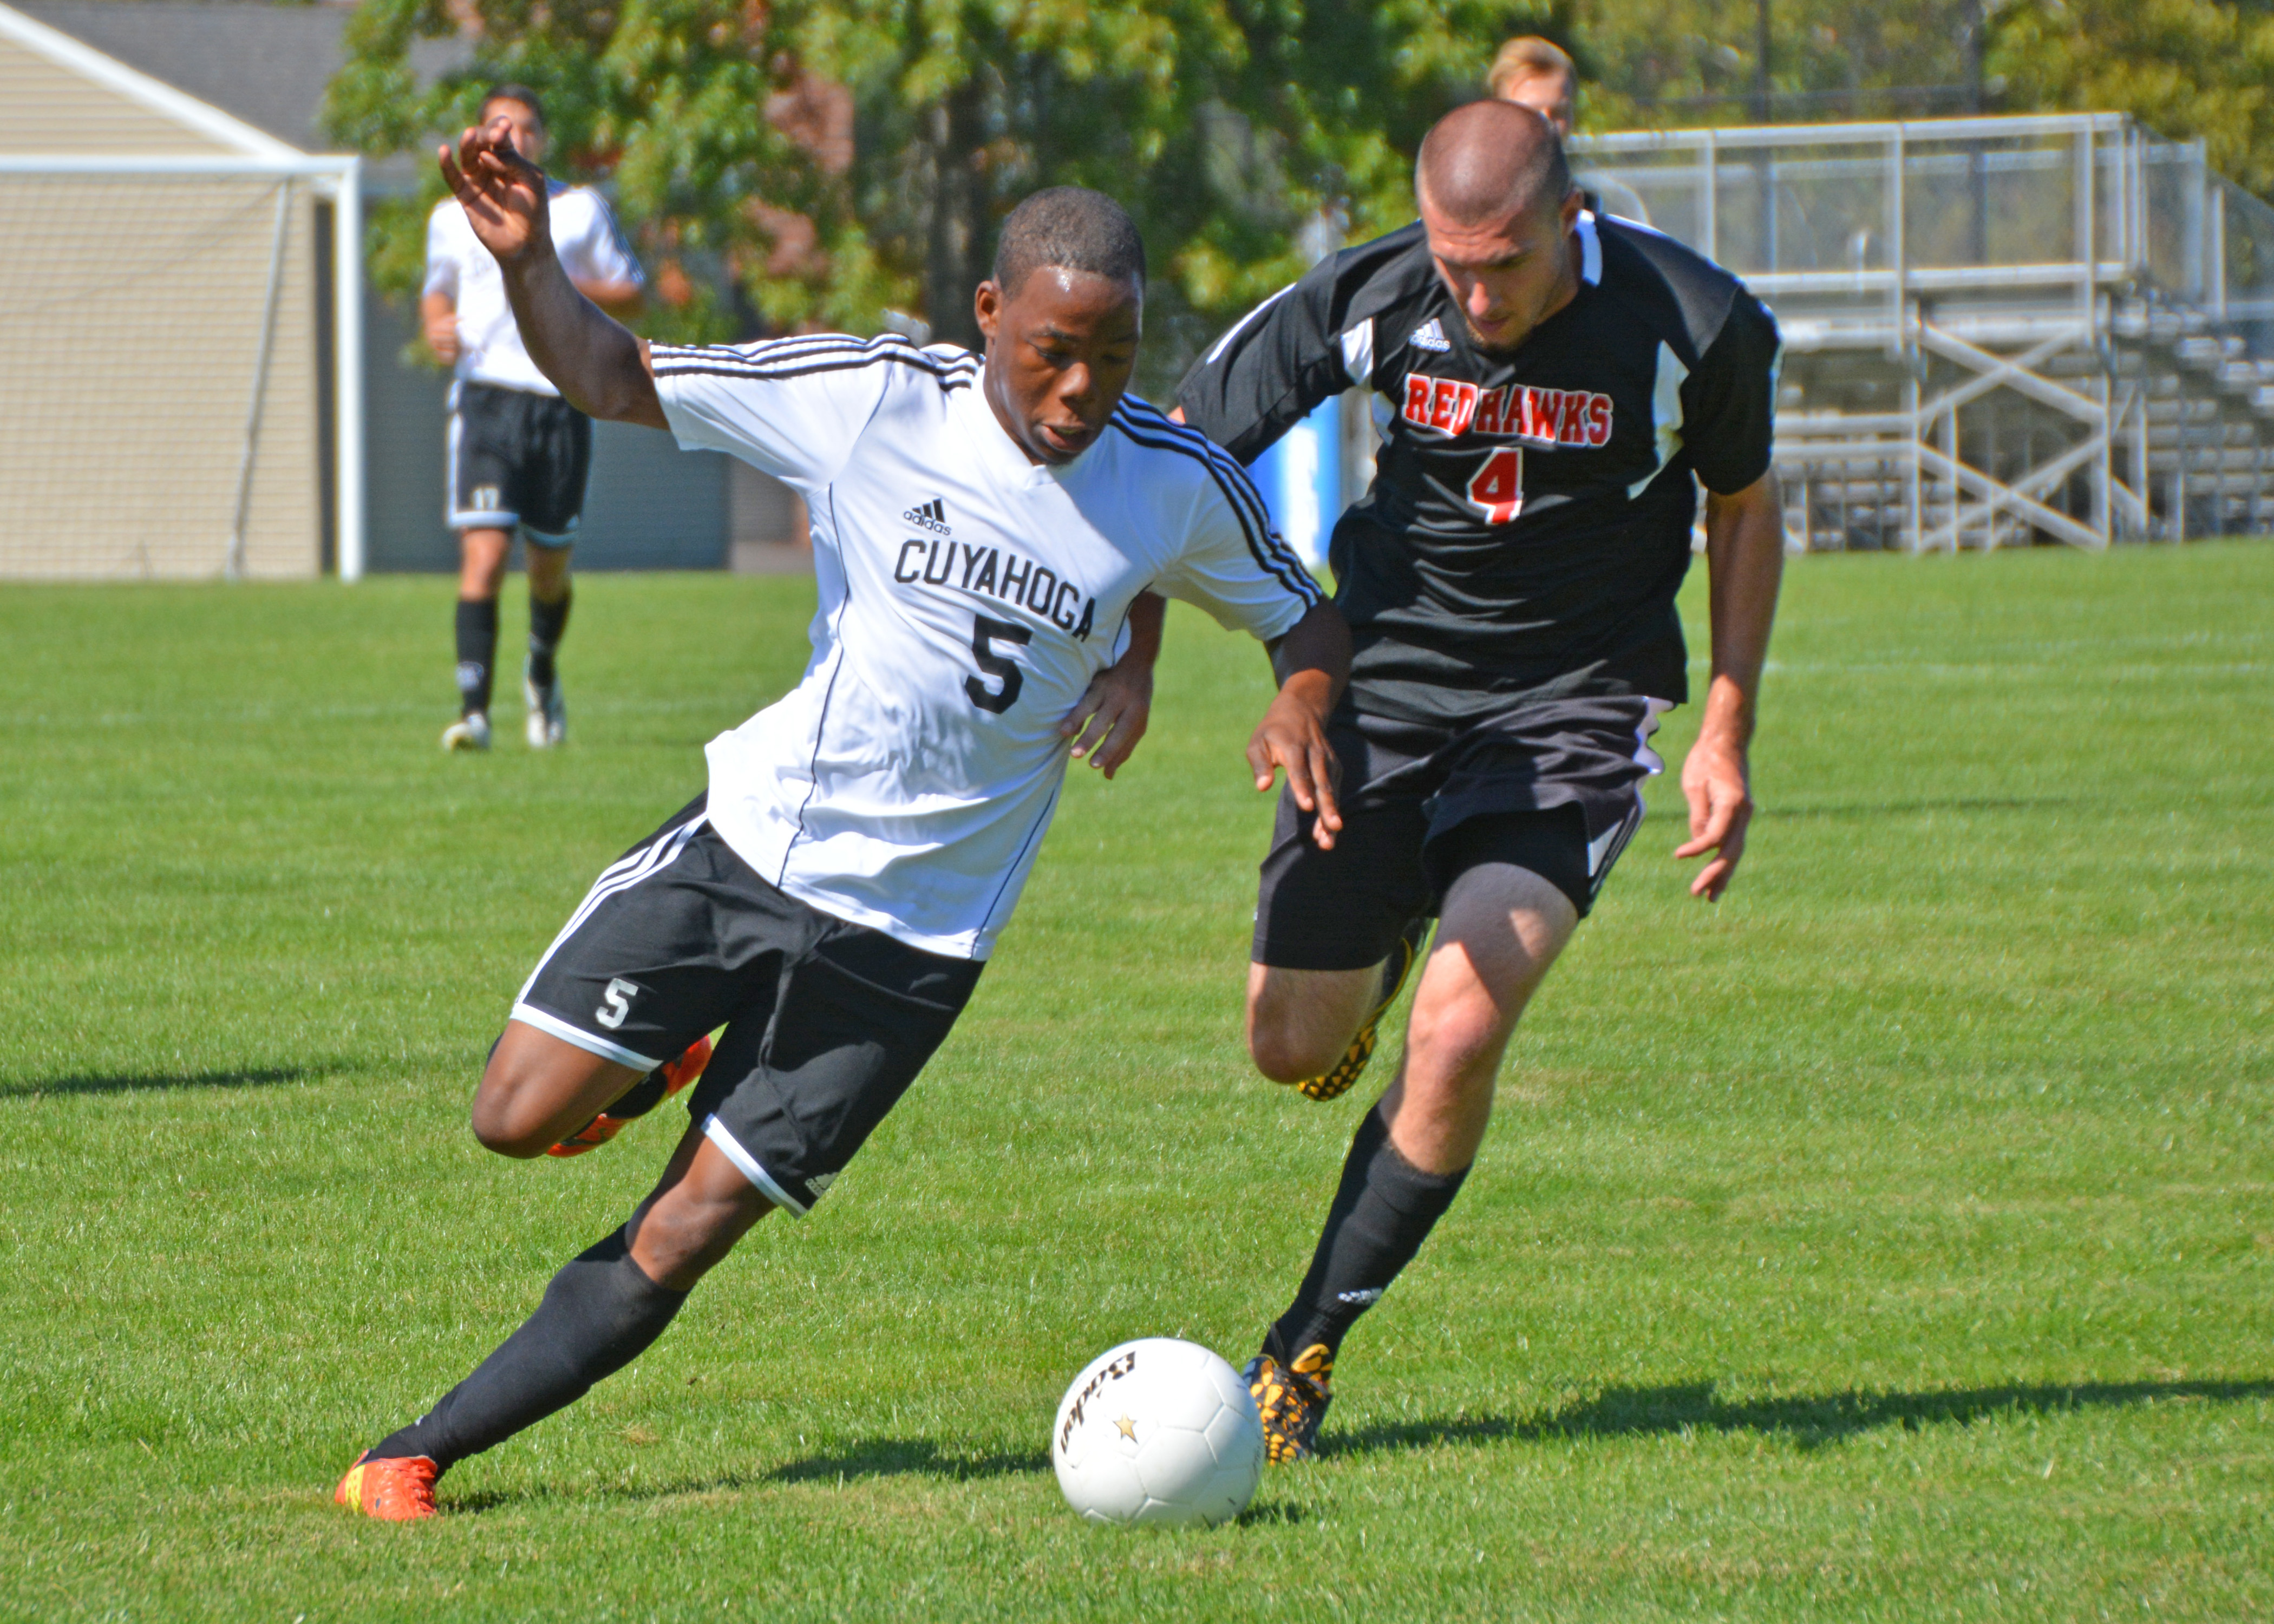 Tri-C freshman Tevin Williams drives the ball down the field with Lake Michigan College defenseman Joey Pasternak at a soccer match played at the Western Campus on Sept. 27. <i>Photo by Emily Rohm</i>